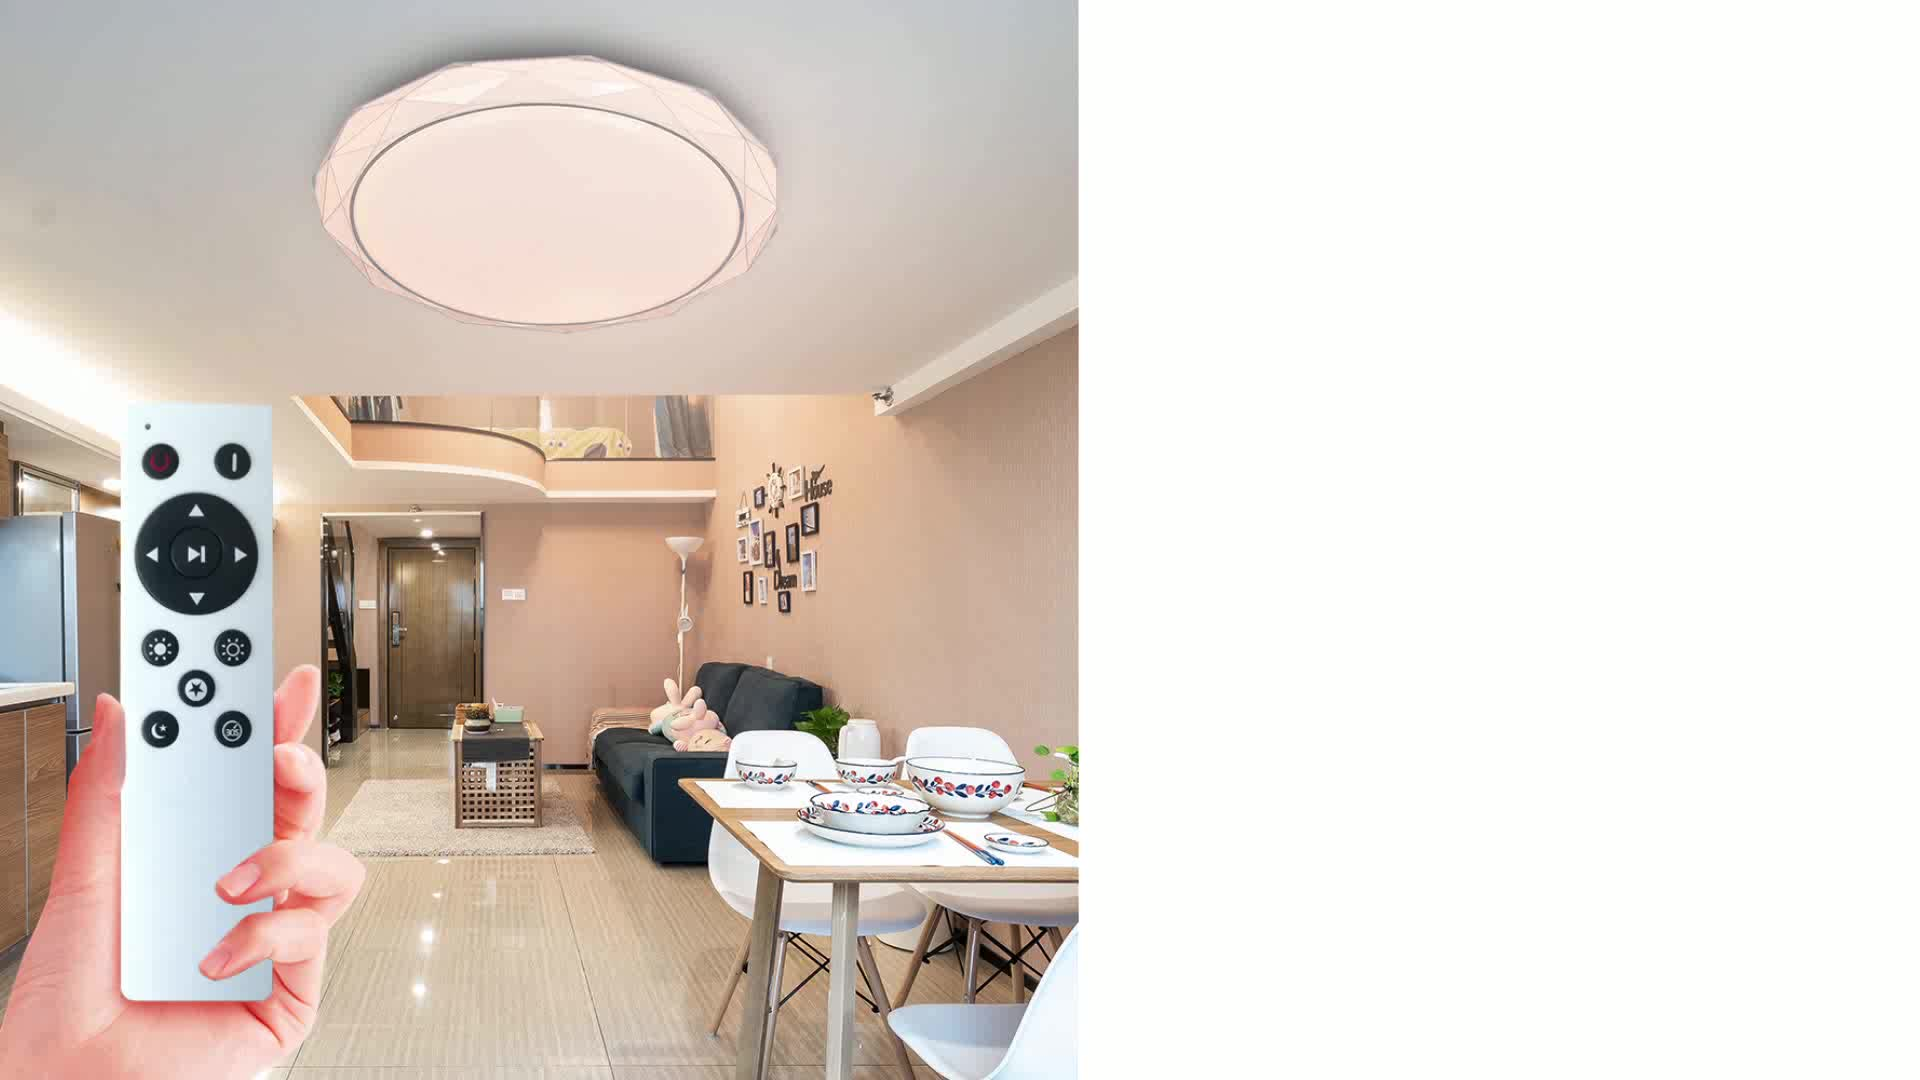 round shape light led ceiling 48W 72w dimming with remote control led ceiling lamp living room dining room ceilinglamp